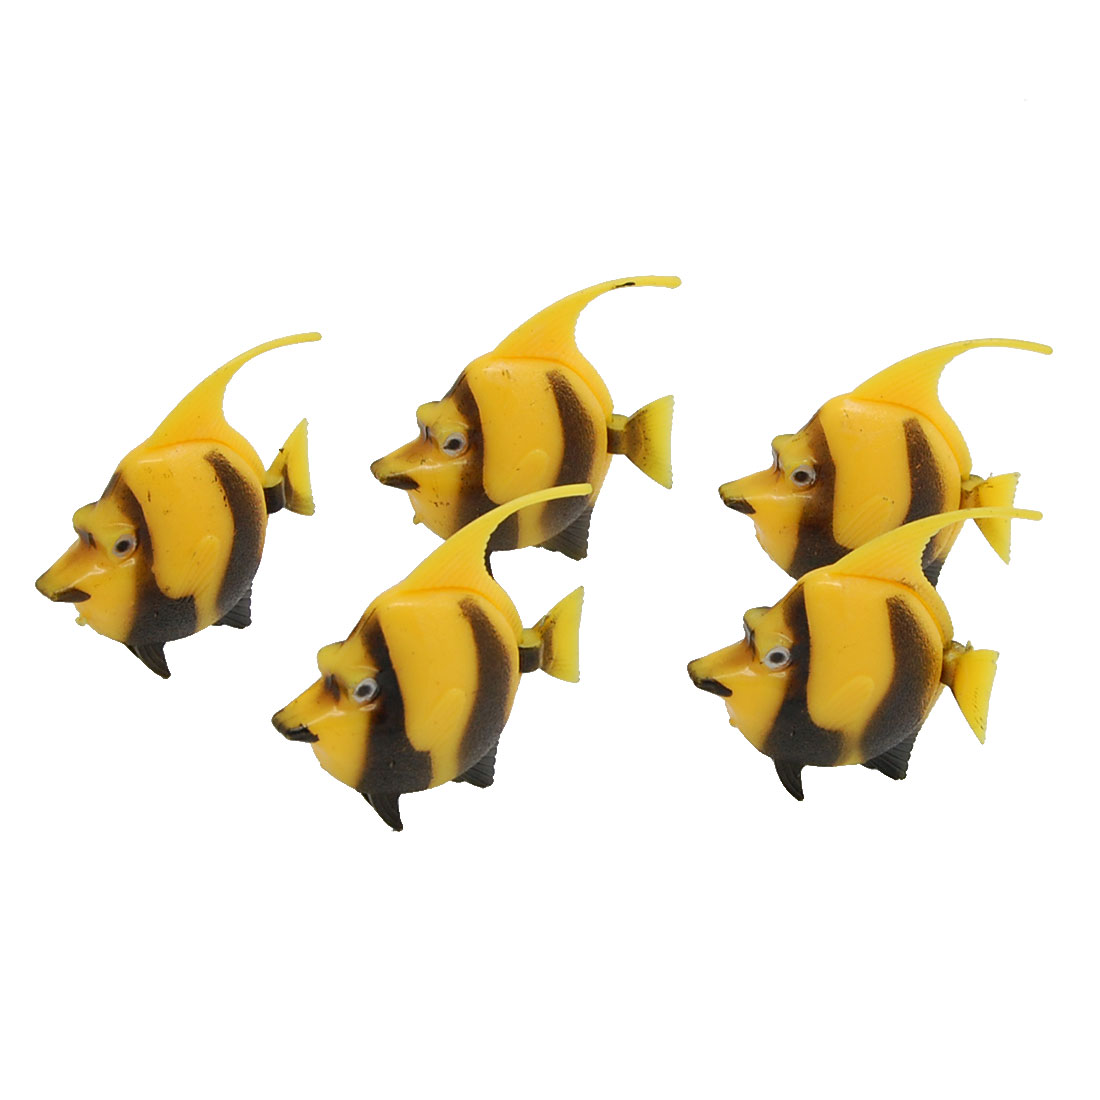 Lifelike Floating Plastic Fish Pack Aquarium Ornament 5 Pcs